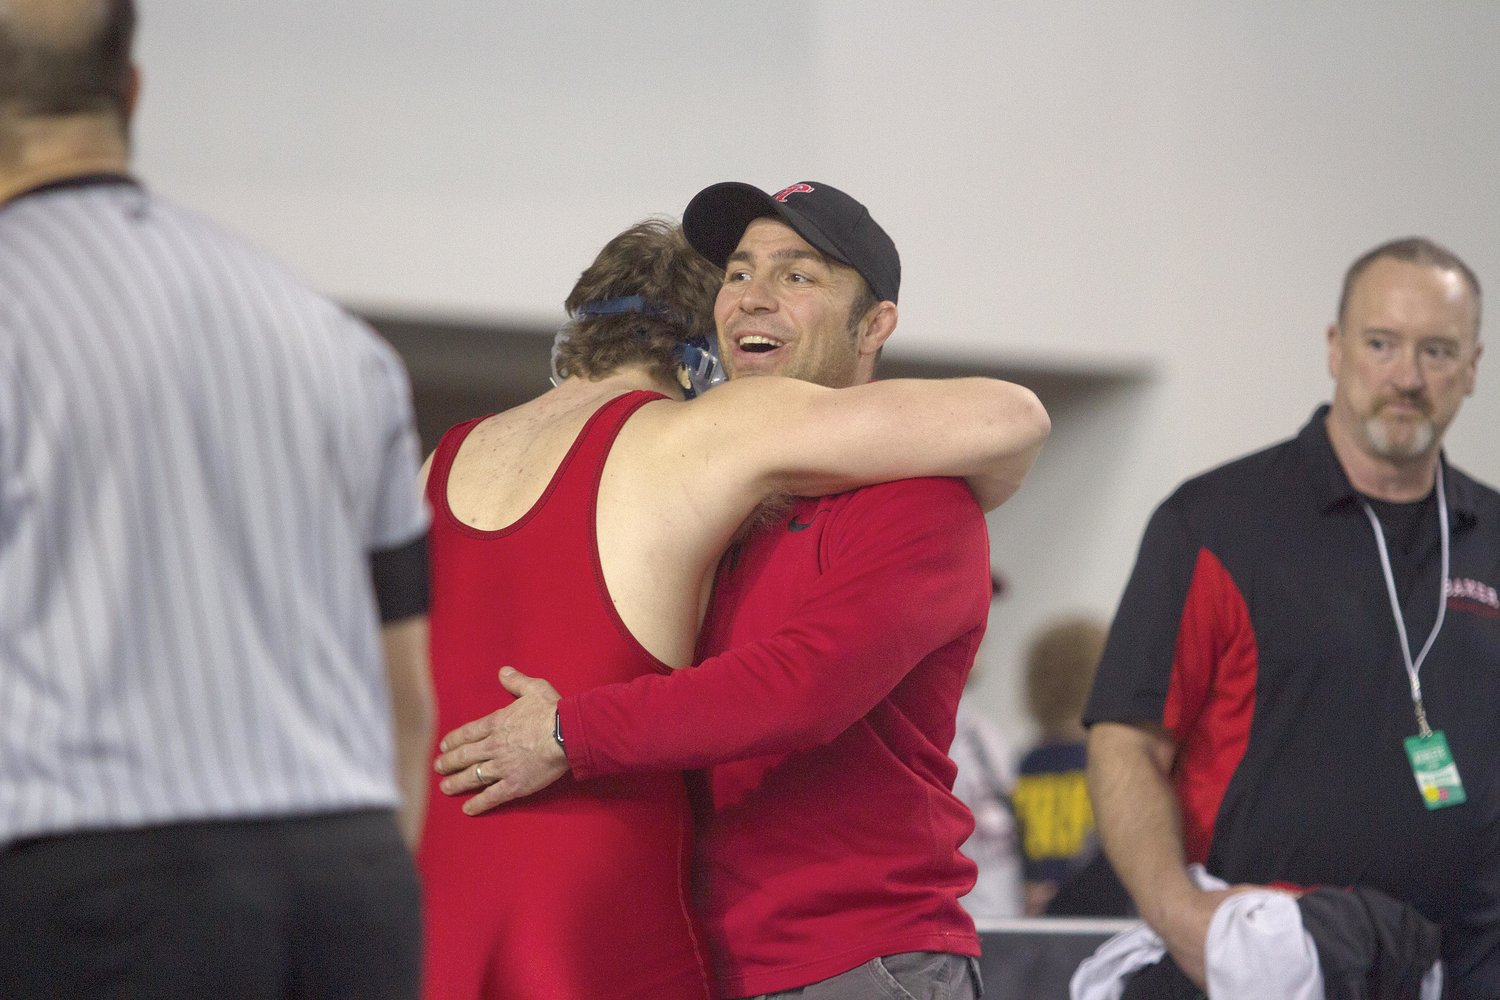 Redhawks coach Steve Grimm hugs Kyle Caldwell after the Chimacum sophomore secured a top-eight medal on Feb. 16.